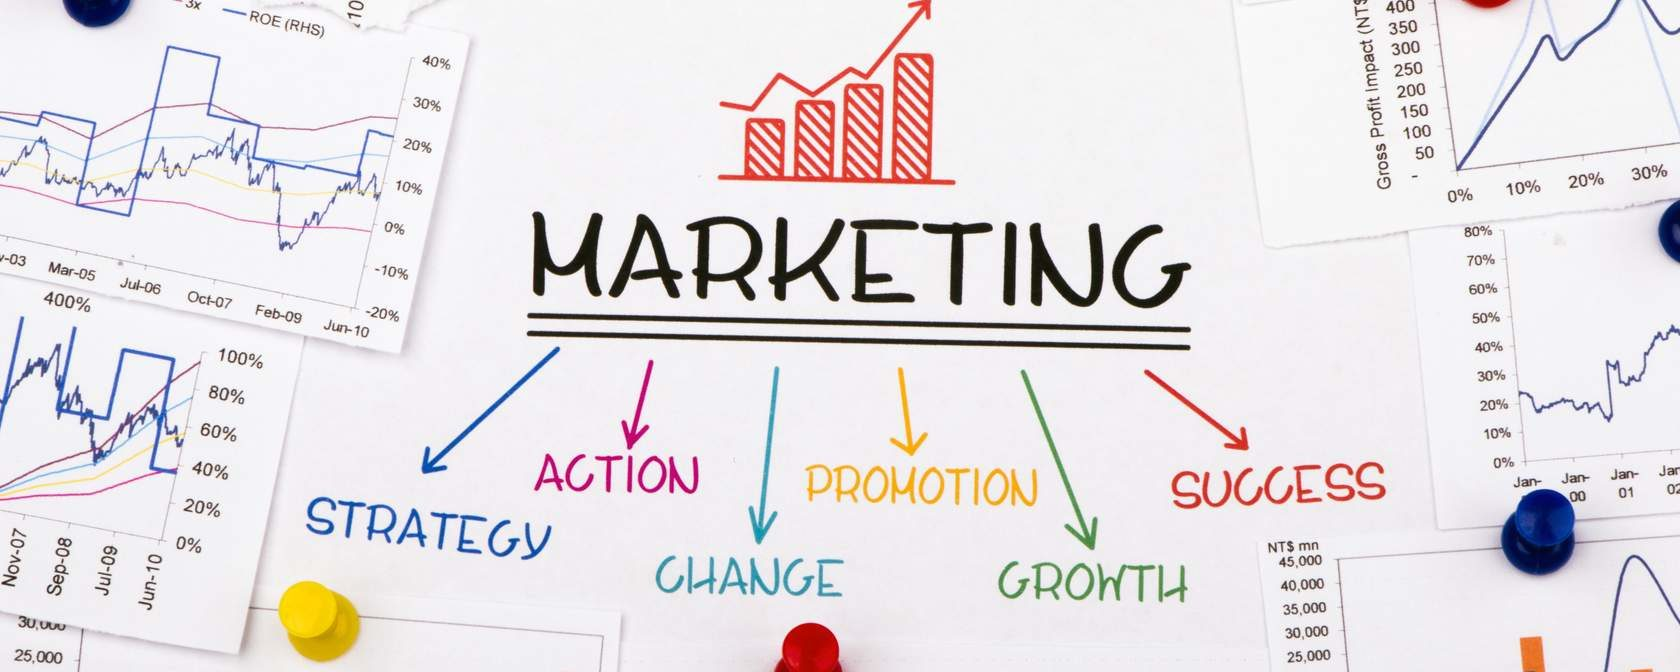 how to profit from marketing and brand success